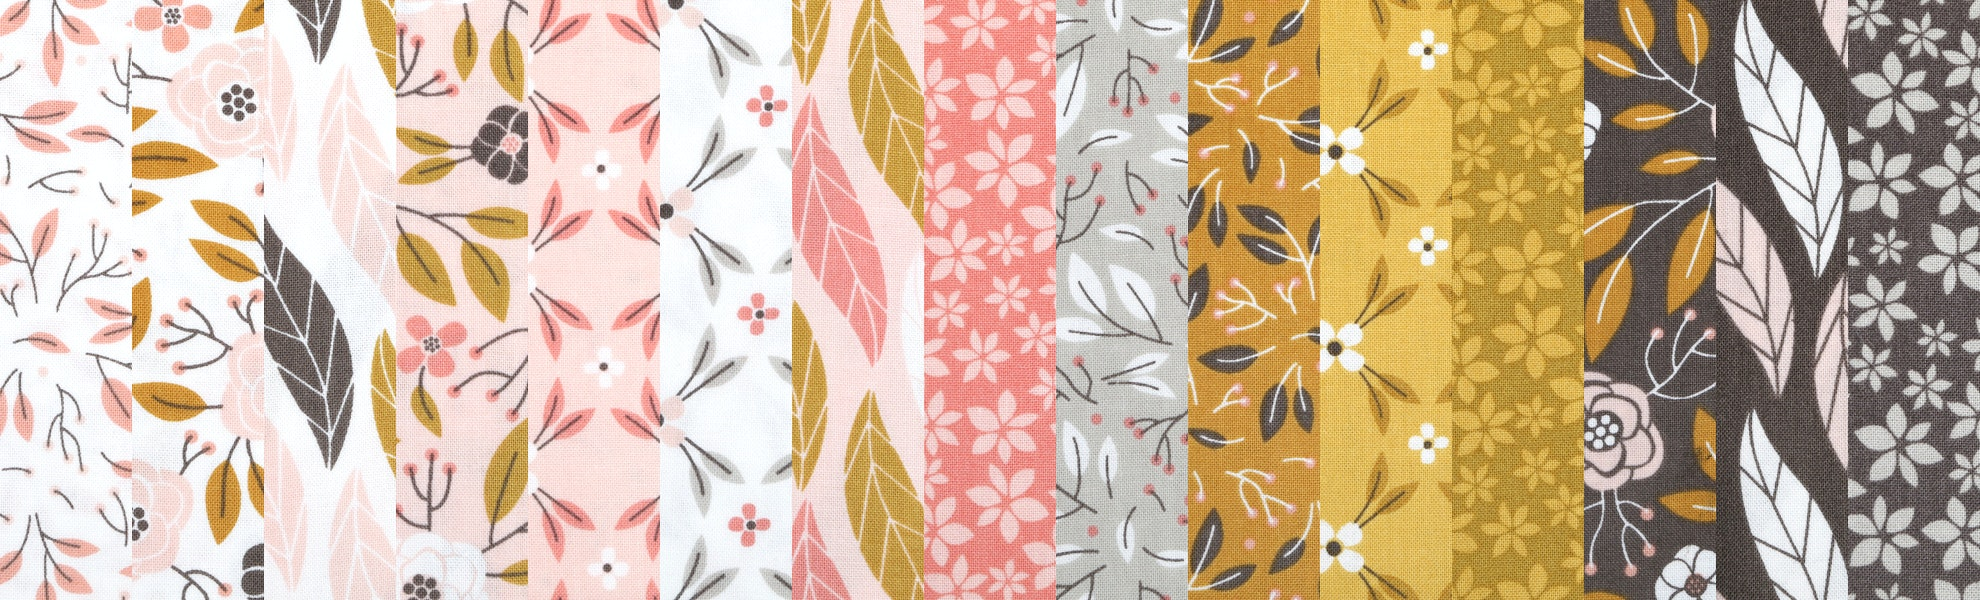 Magnolia by Alisse Courter Fat Quarter Bundle